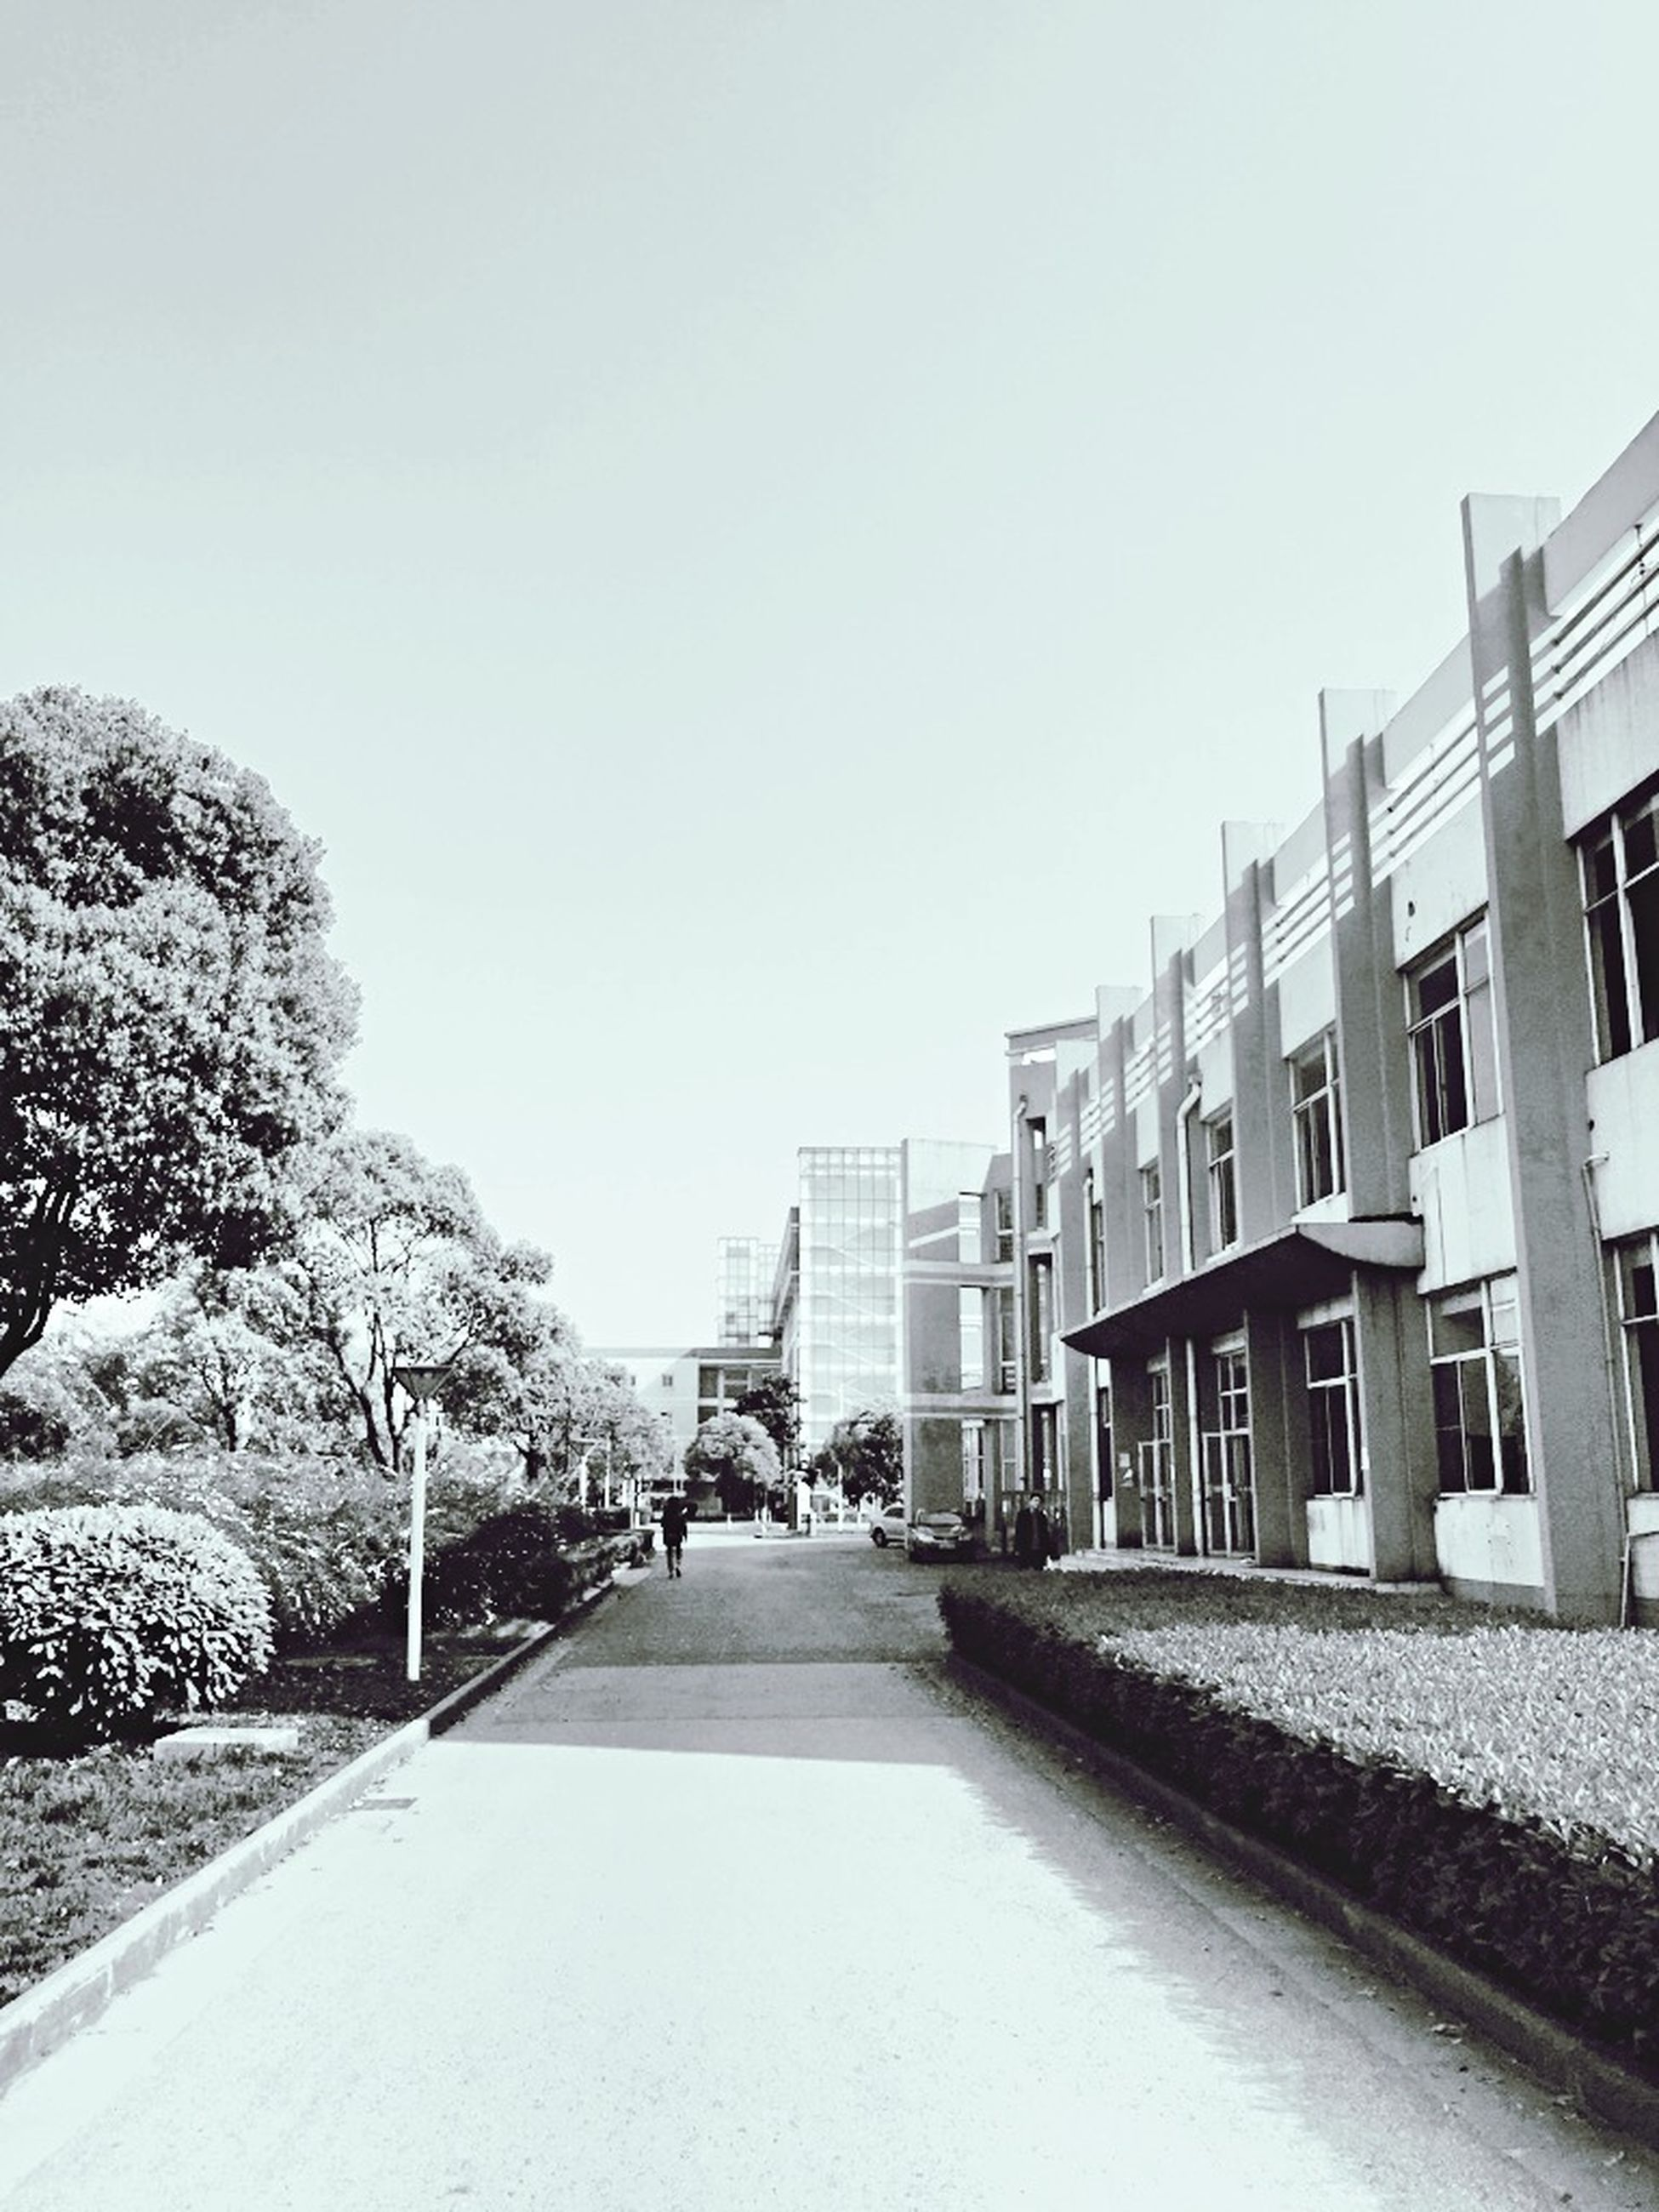 building exterior, architecture, built structure, clear sky, the way forward, street, diminishing perspective, copy space, road, snow, winter, cold temperature, city, residential structure, vanishing point, transportation, tree, residential building, building, day